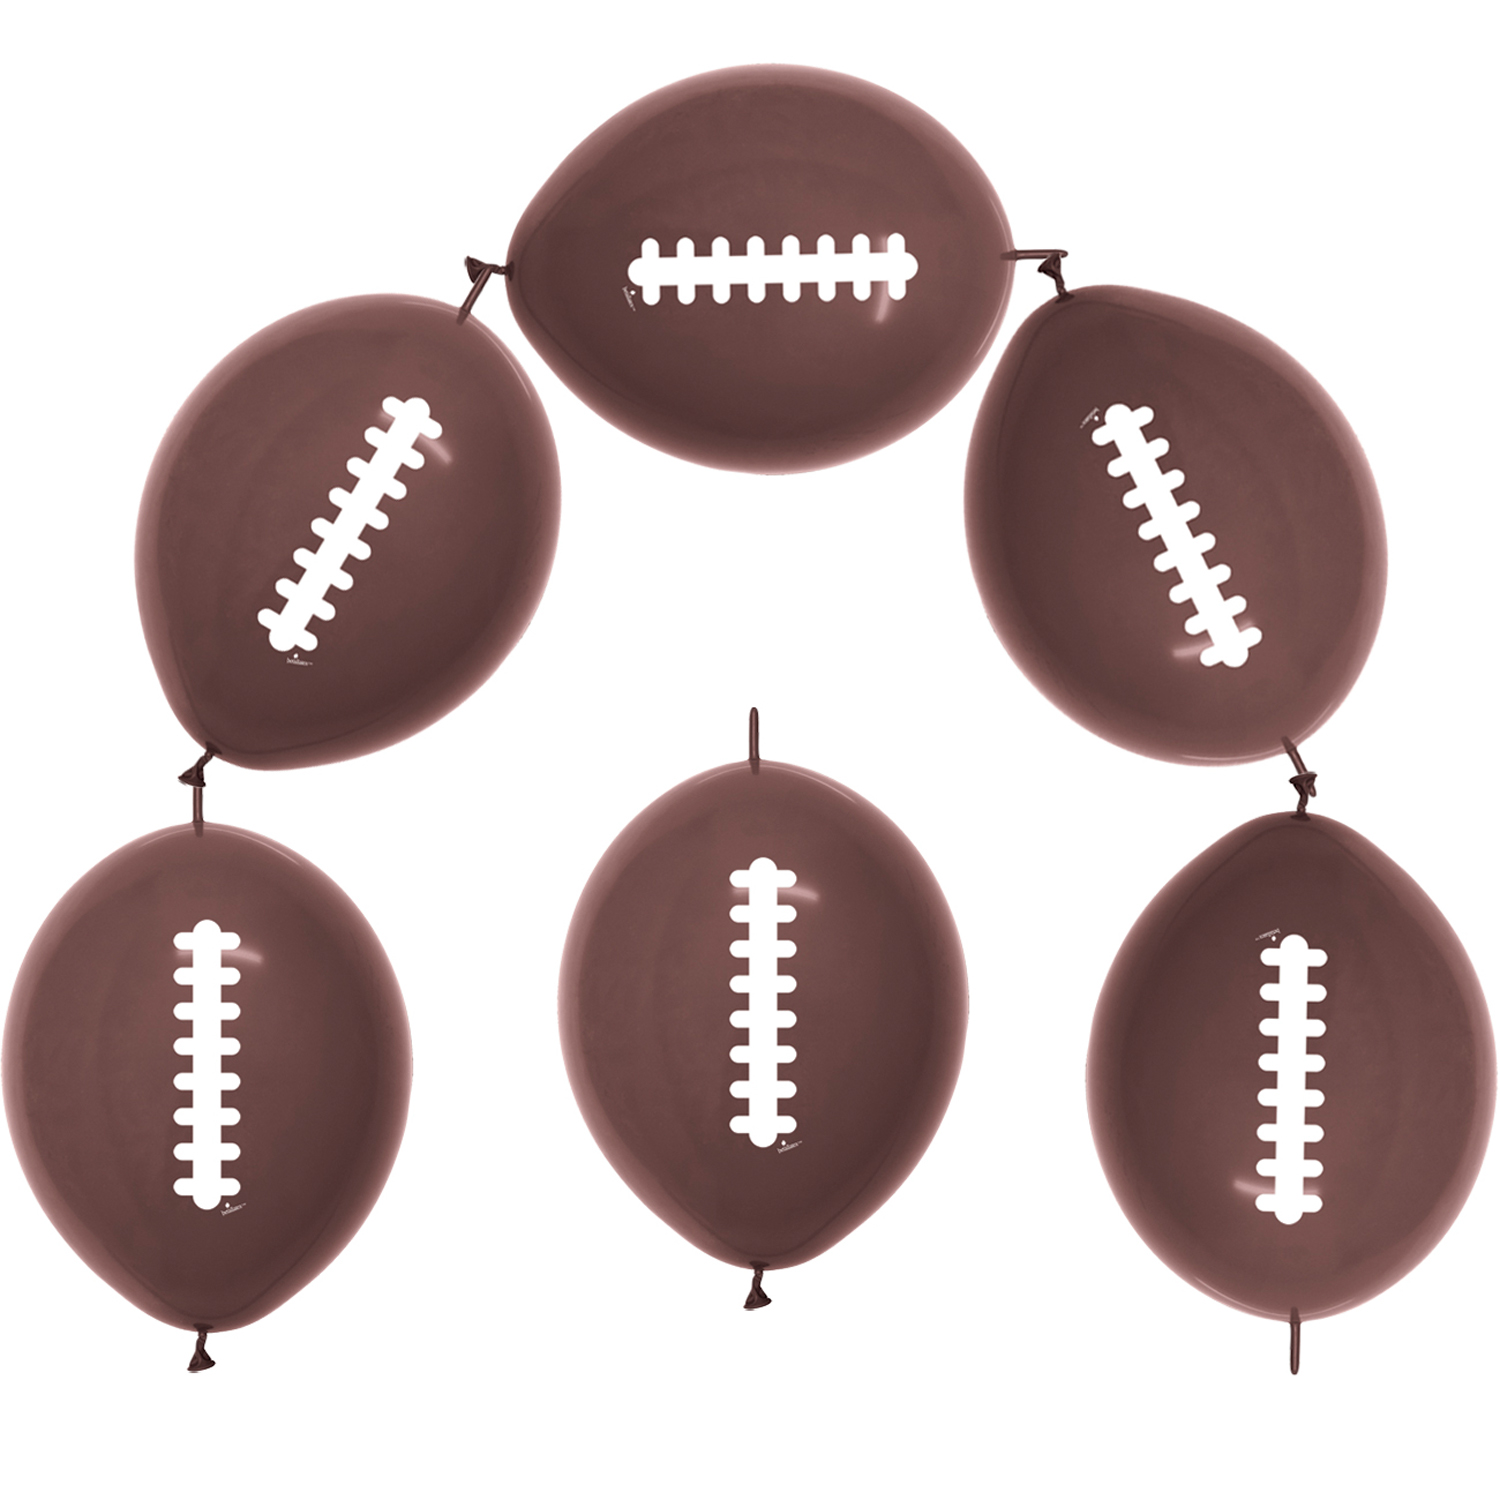 "Betalic NFL Super Bowl Party 50 Pack 12"" Link-O-Loon Balloons Chocolate Brown"